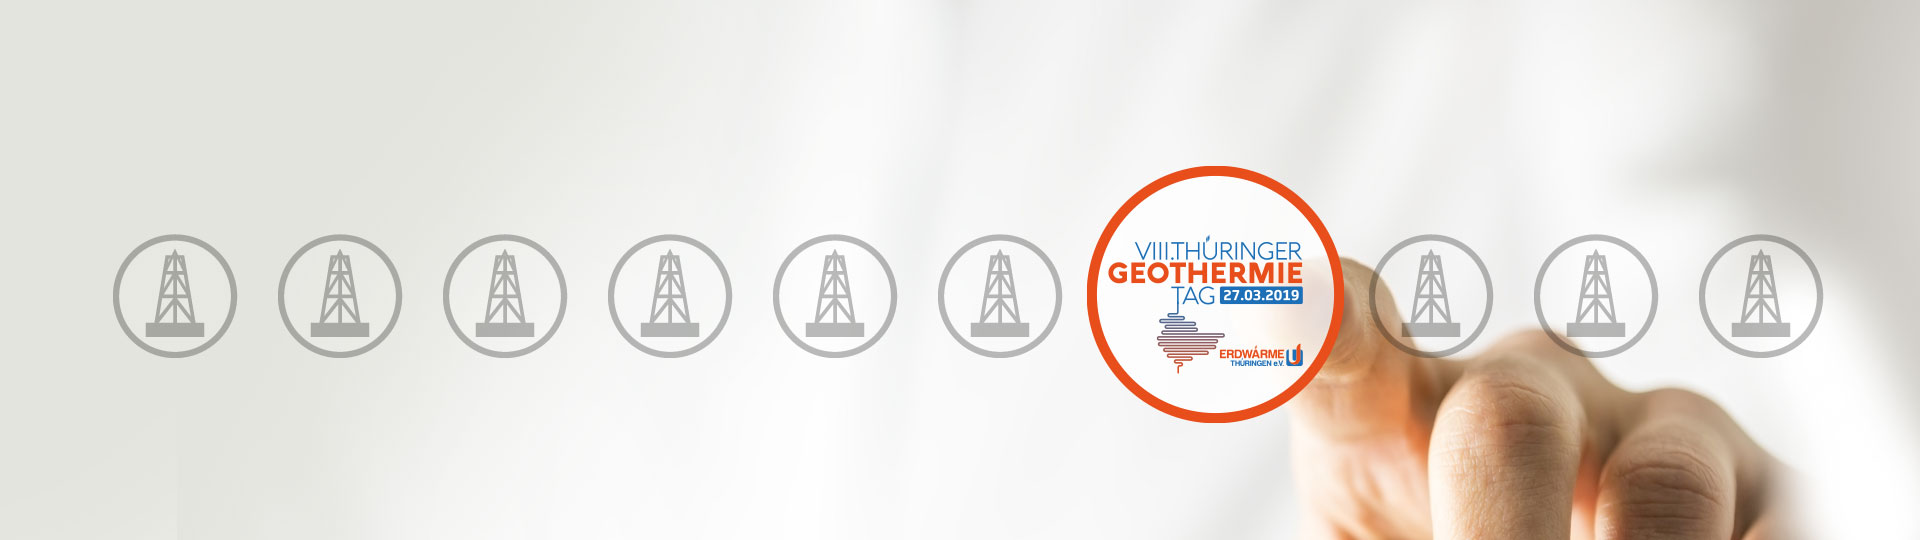 Geothermietag